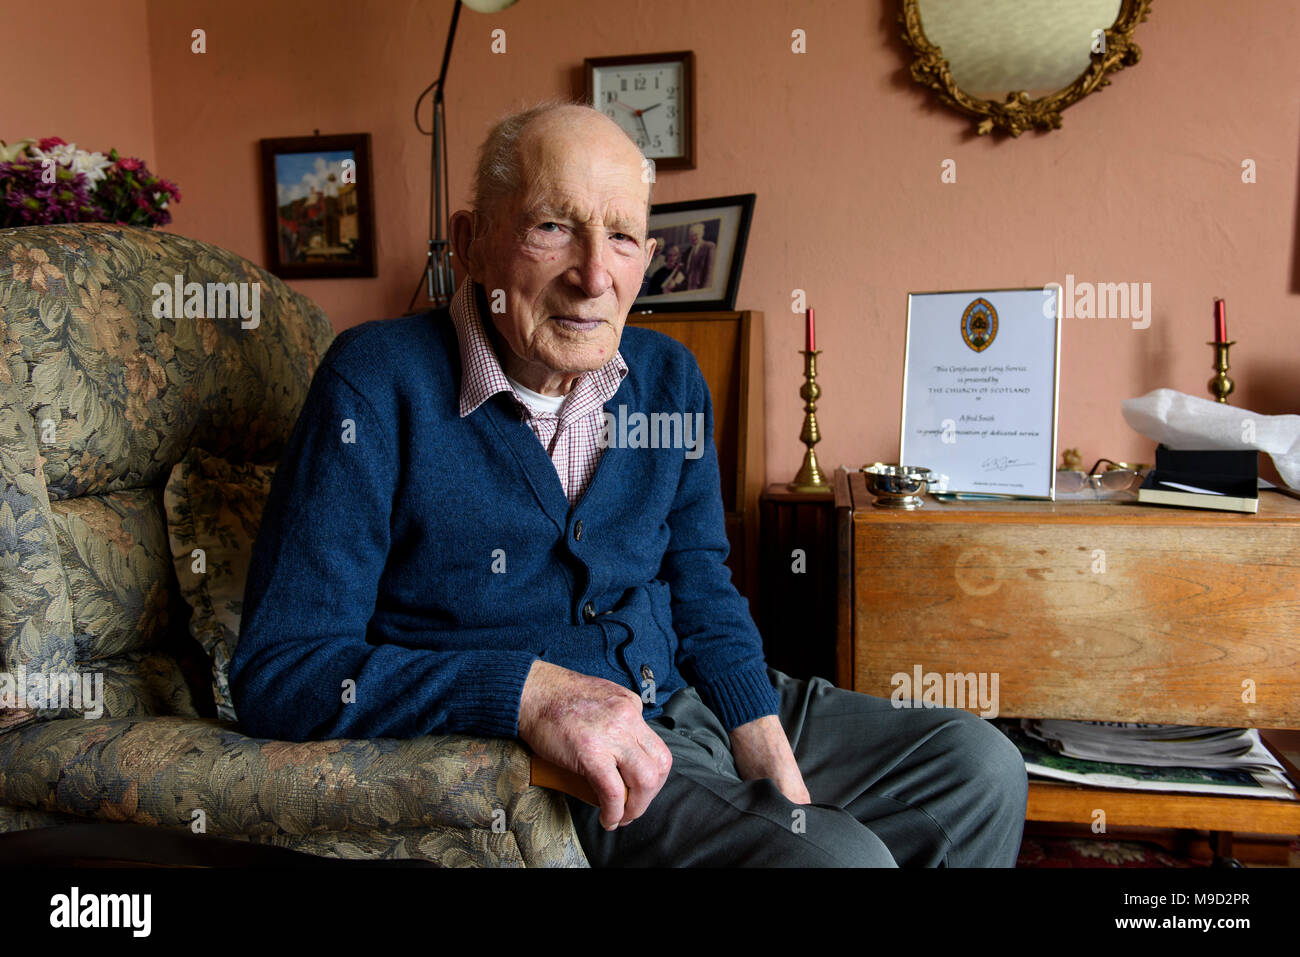 Wednesday 10th of May 2017: Scotland's oldest man, Alfred